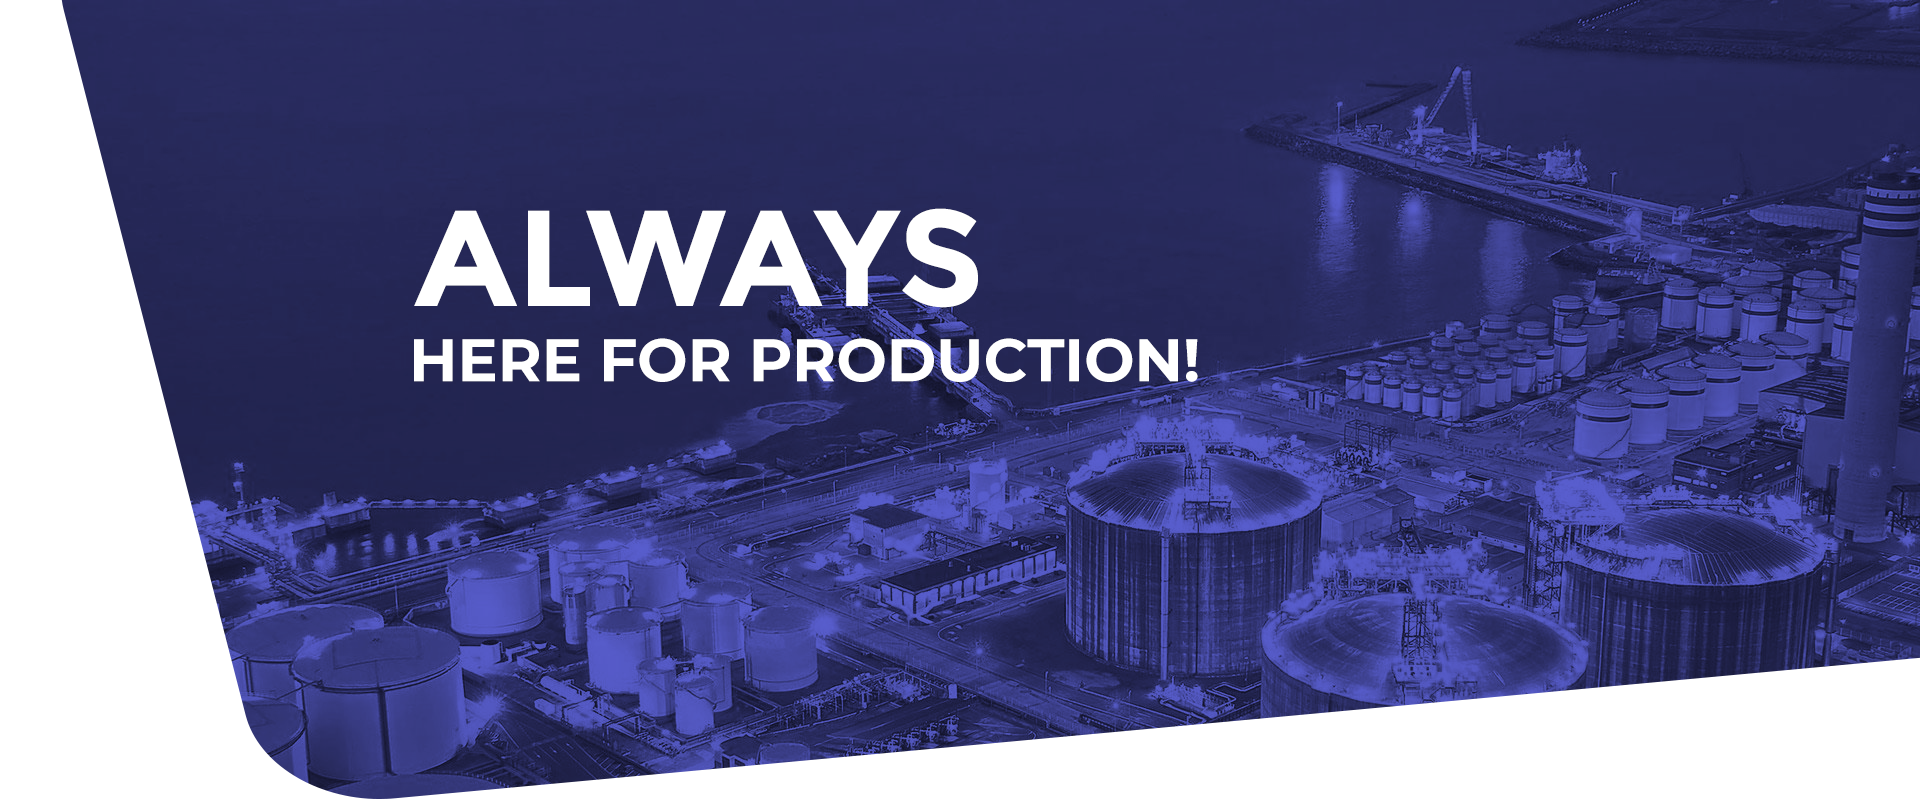 always here for production!